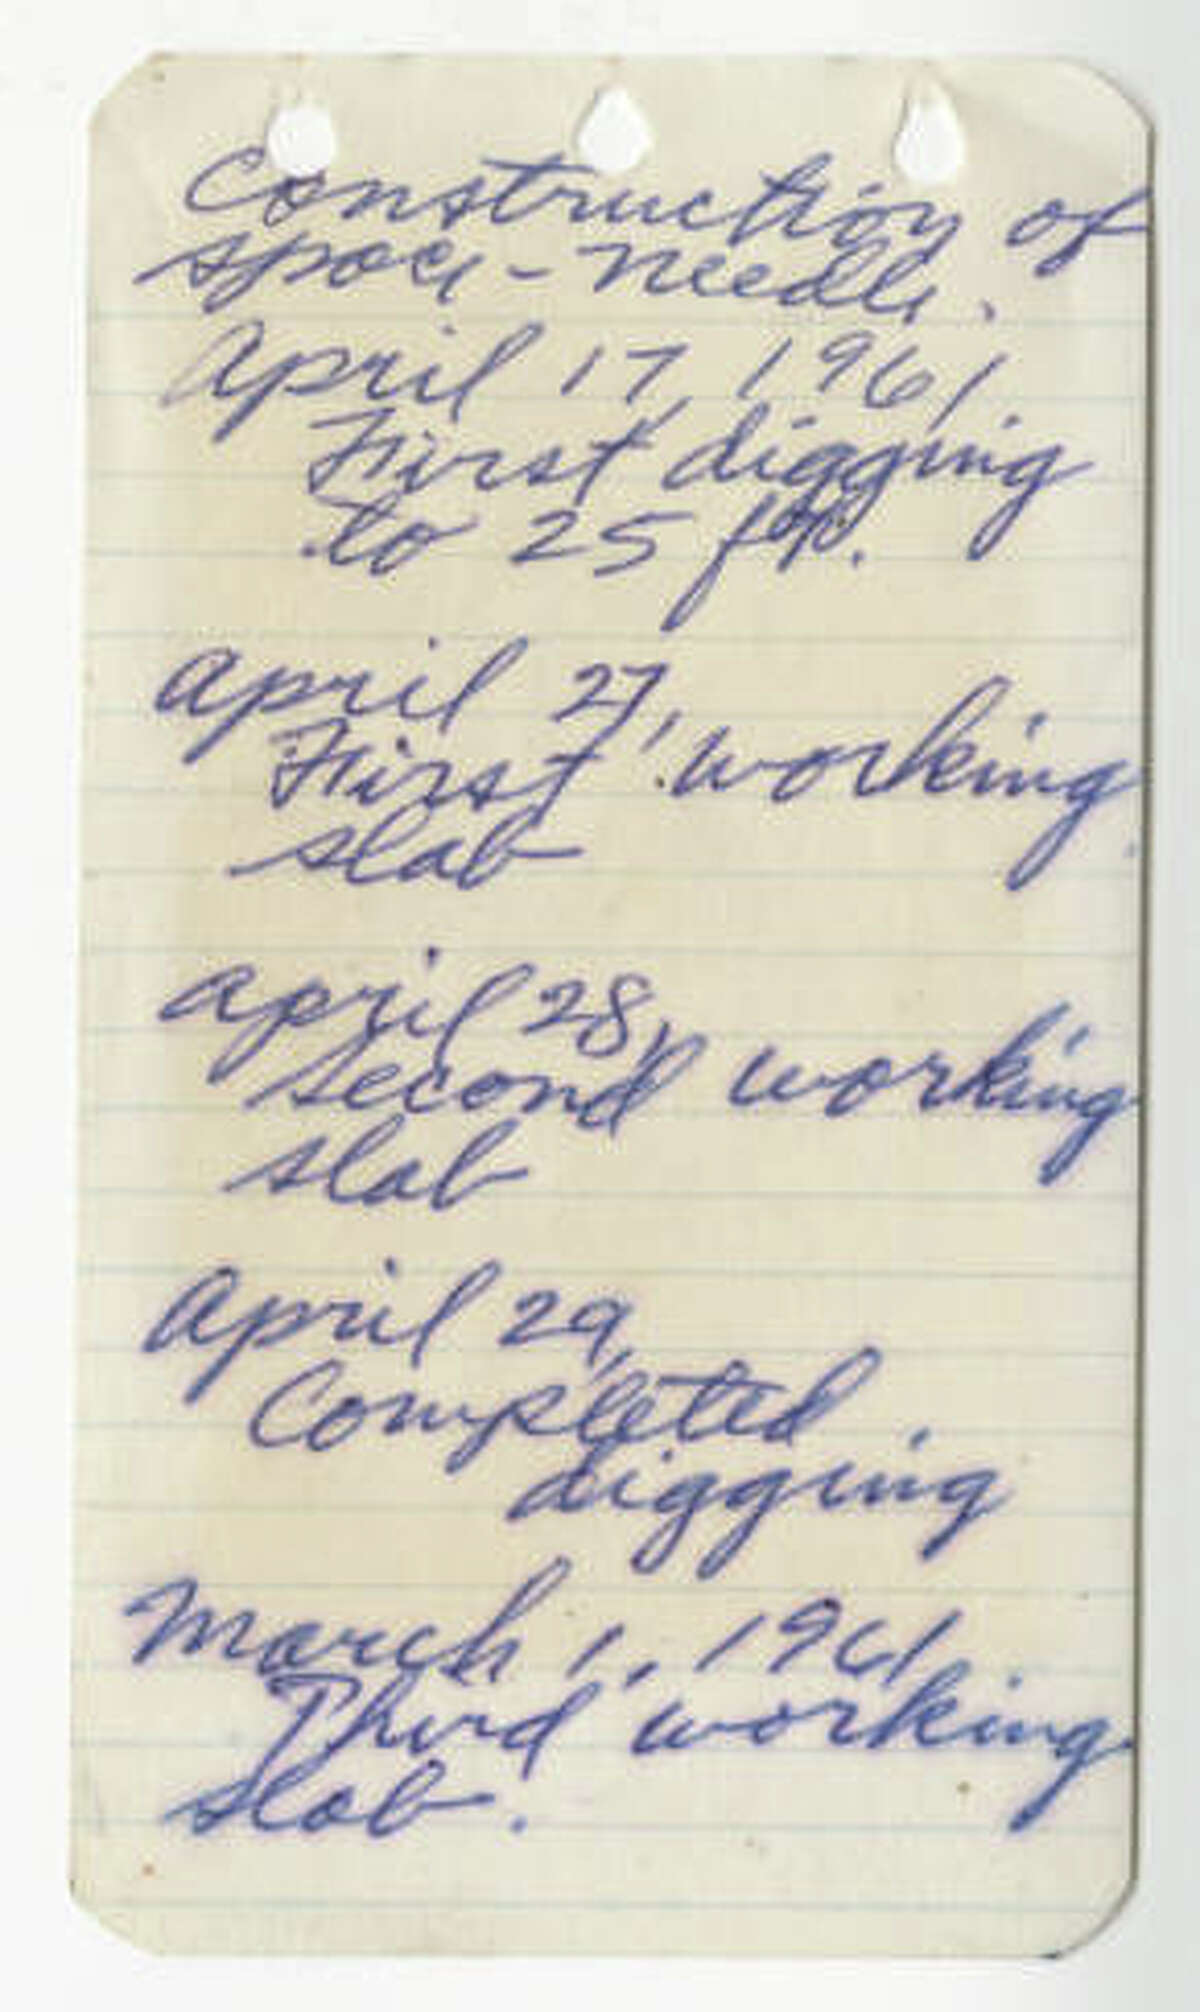 This image shows the first page of a notebook kept by George Gulacsik, who was hired by John Graham to photograph the construction of the Space Needle.